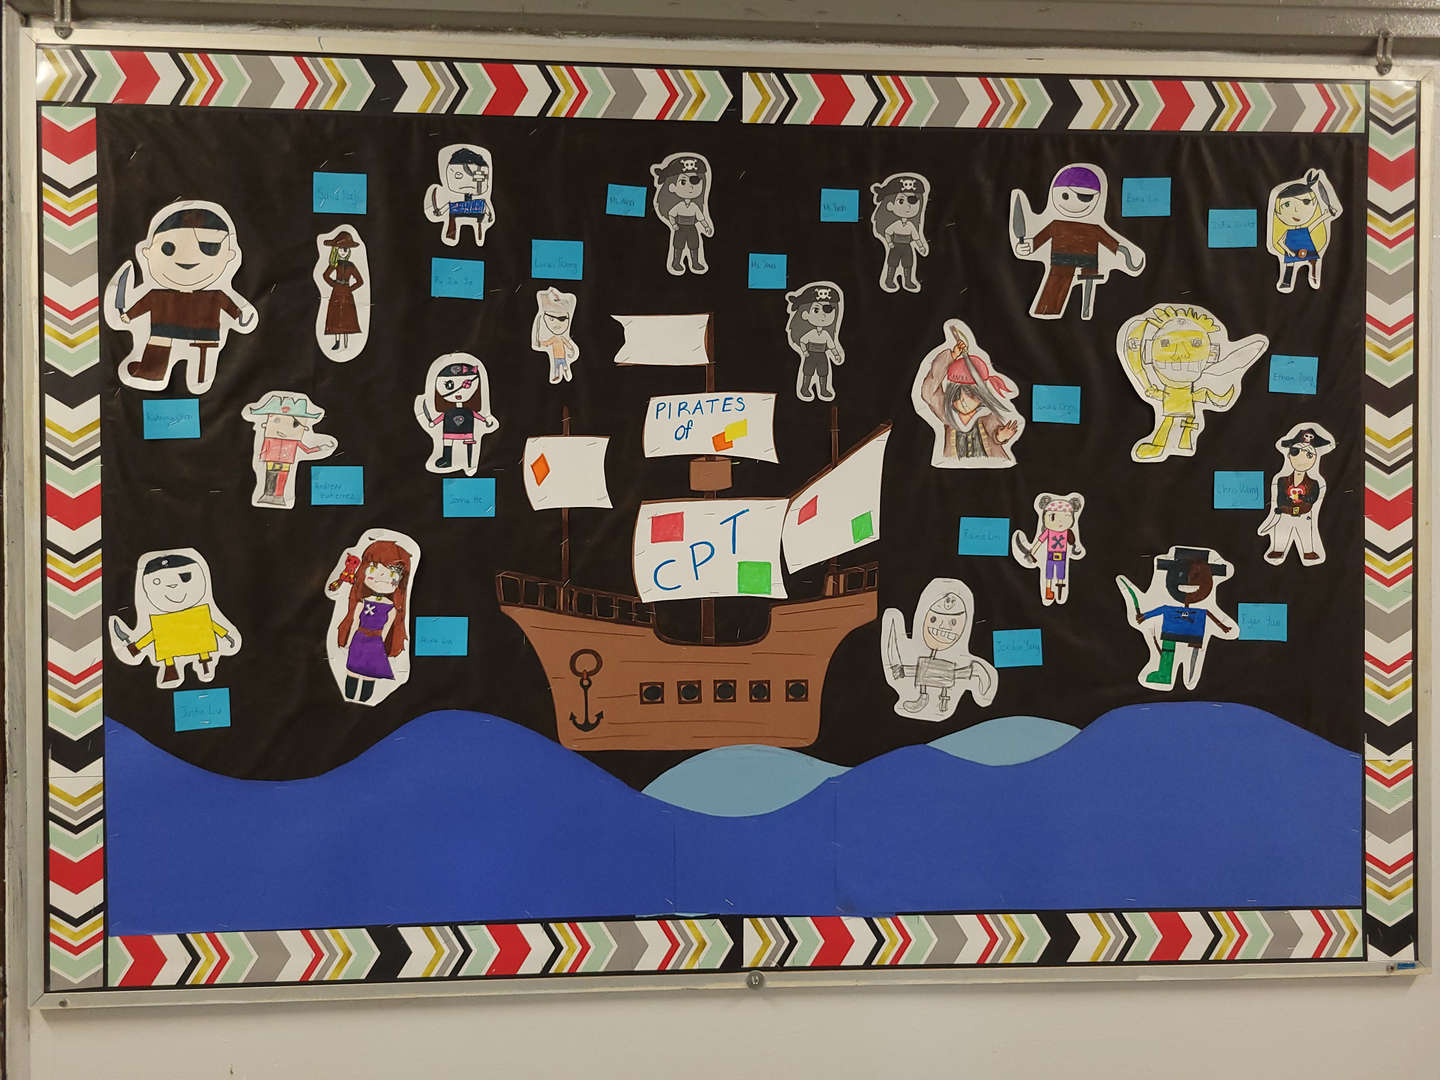 This bulletin board displays information on pirates.